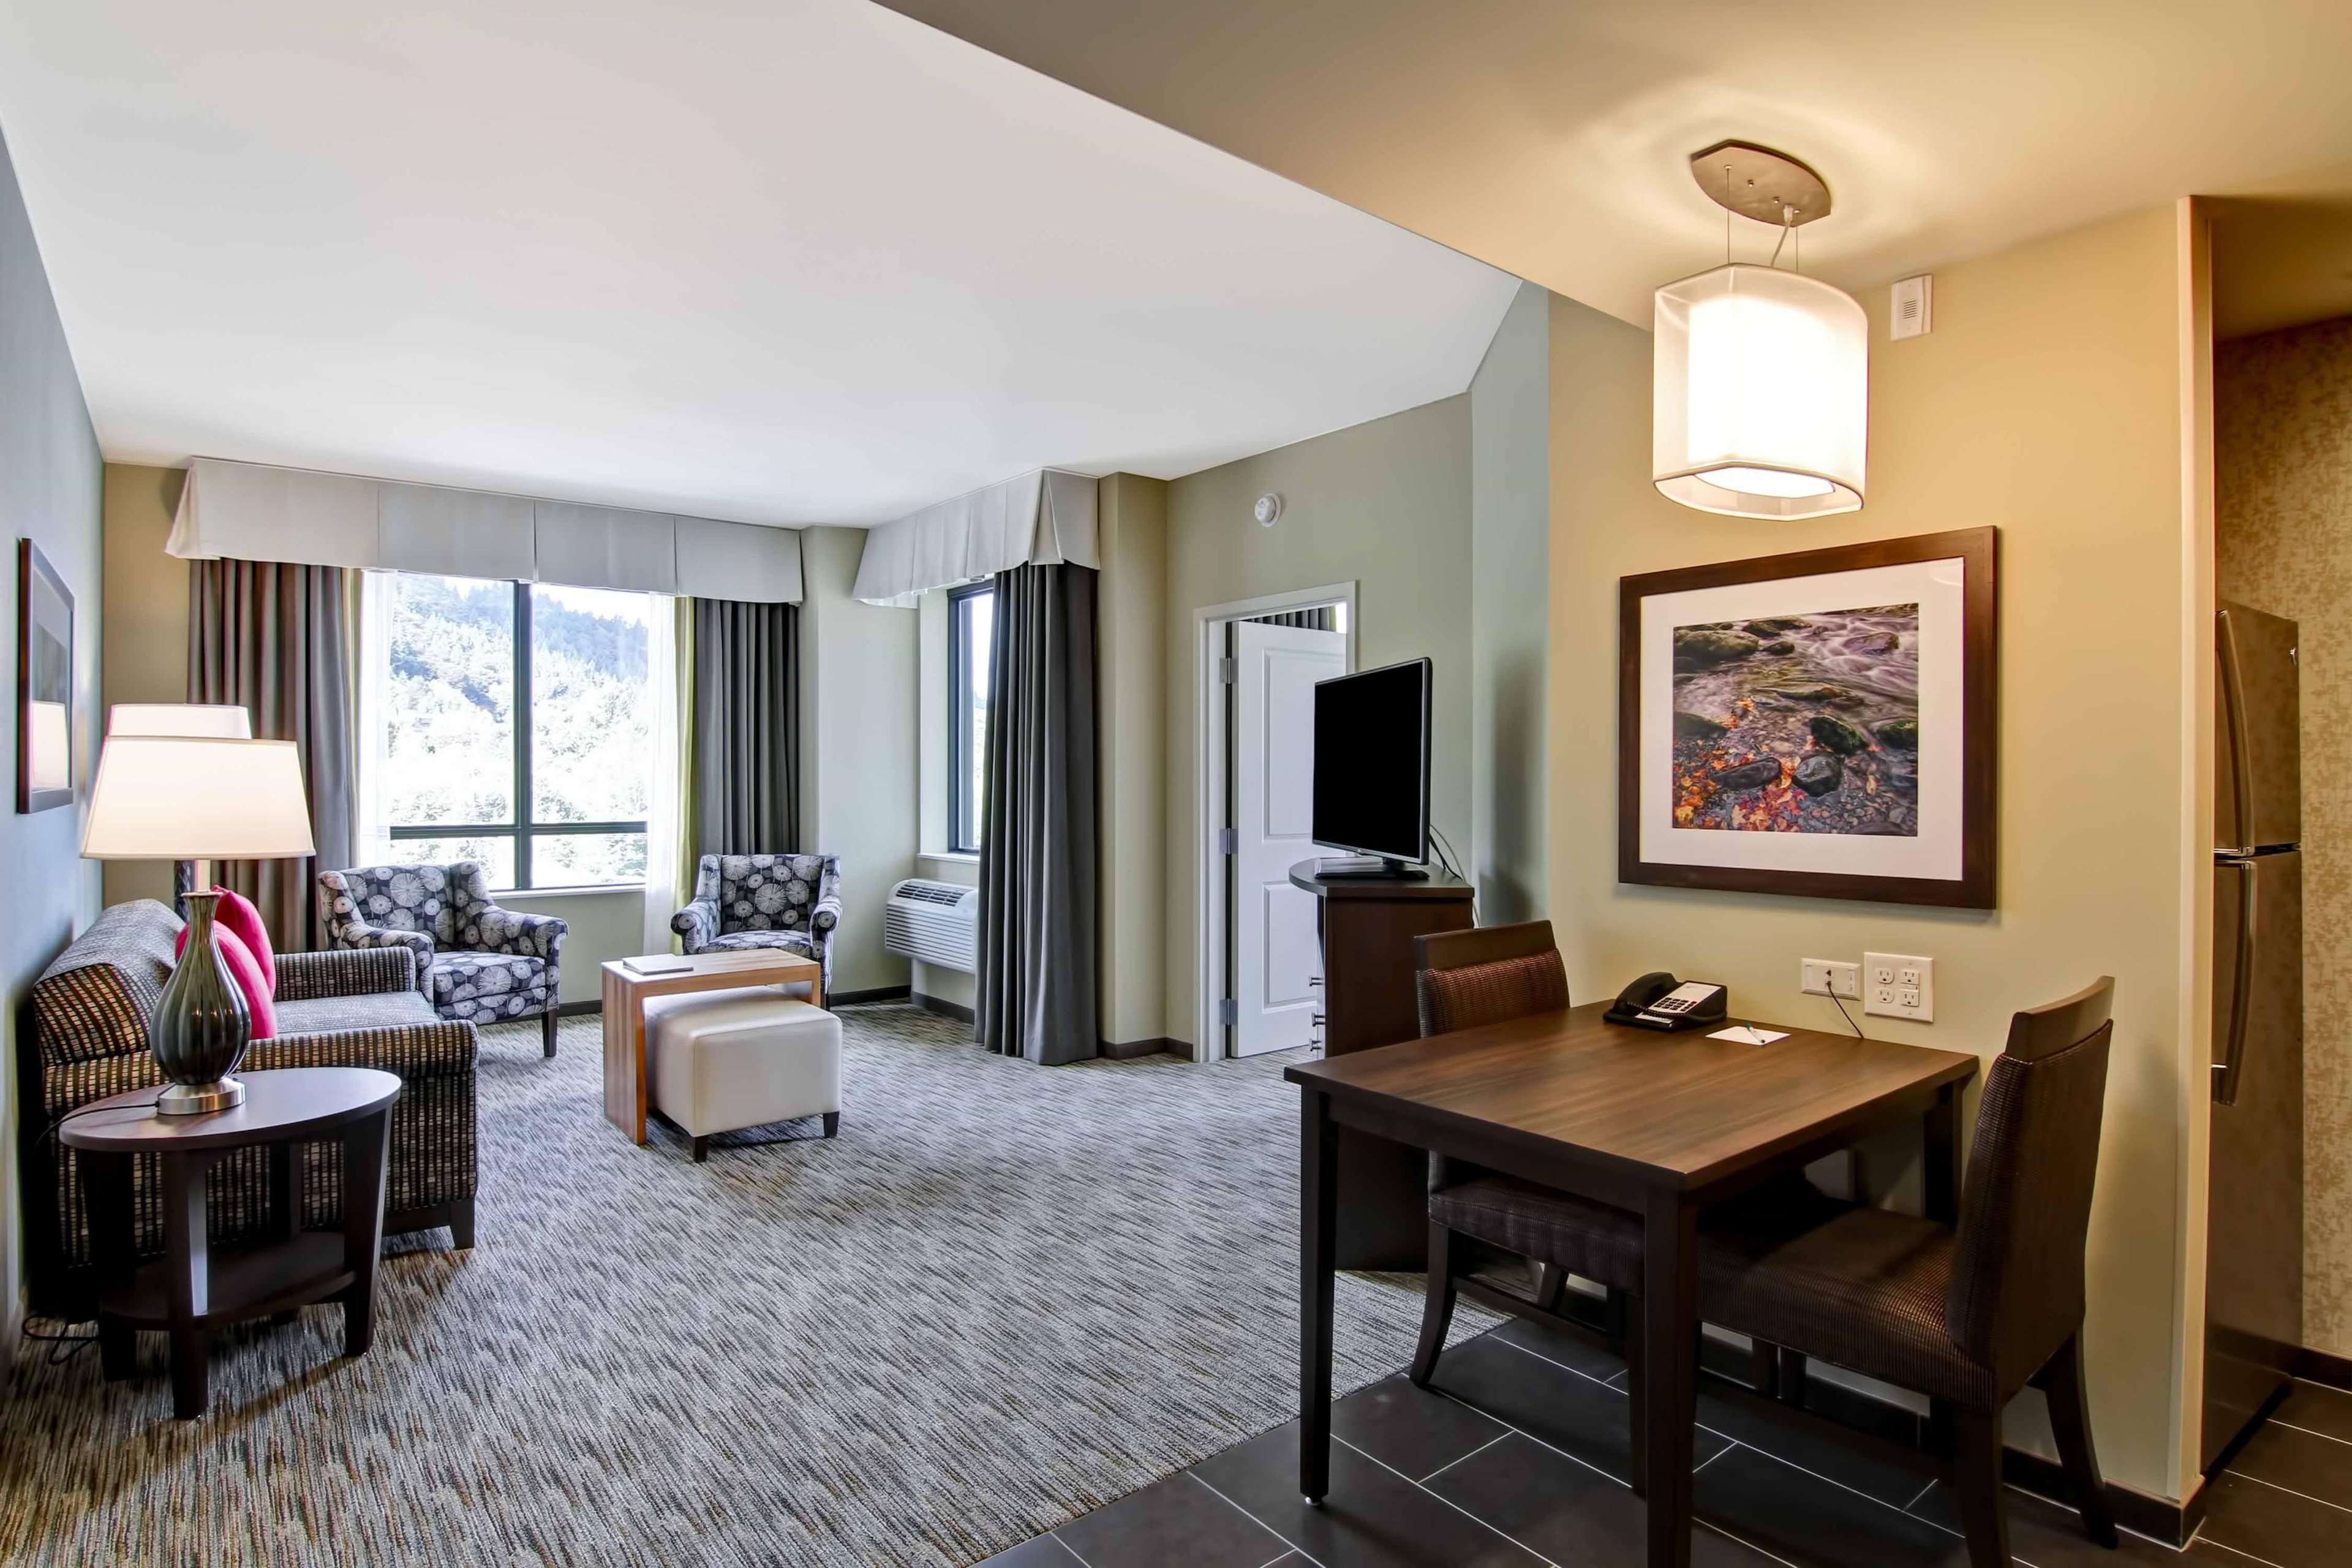 Homewood Suites by Hilton Seattle-Issaquah image 31